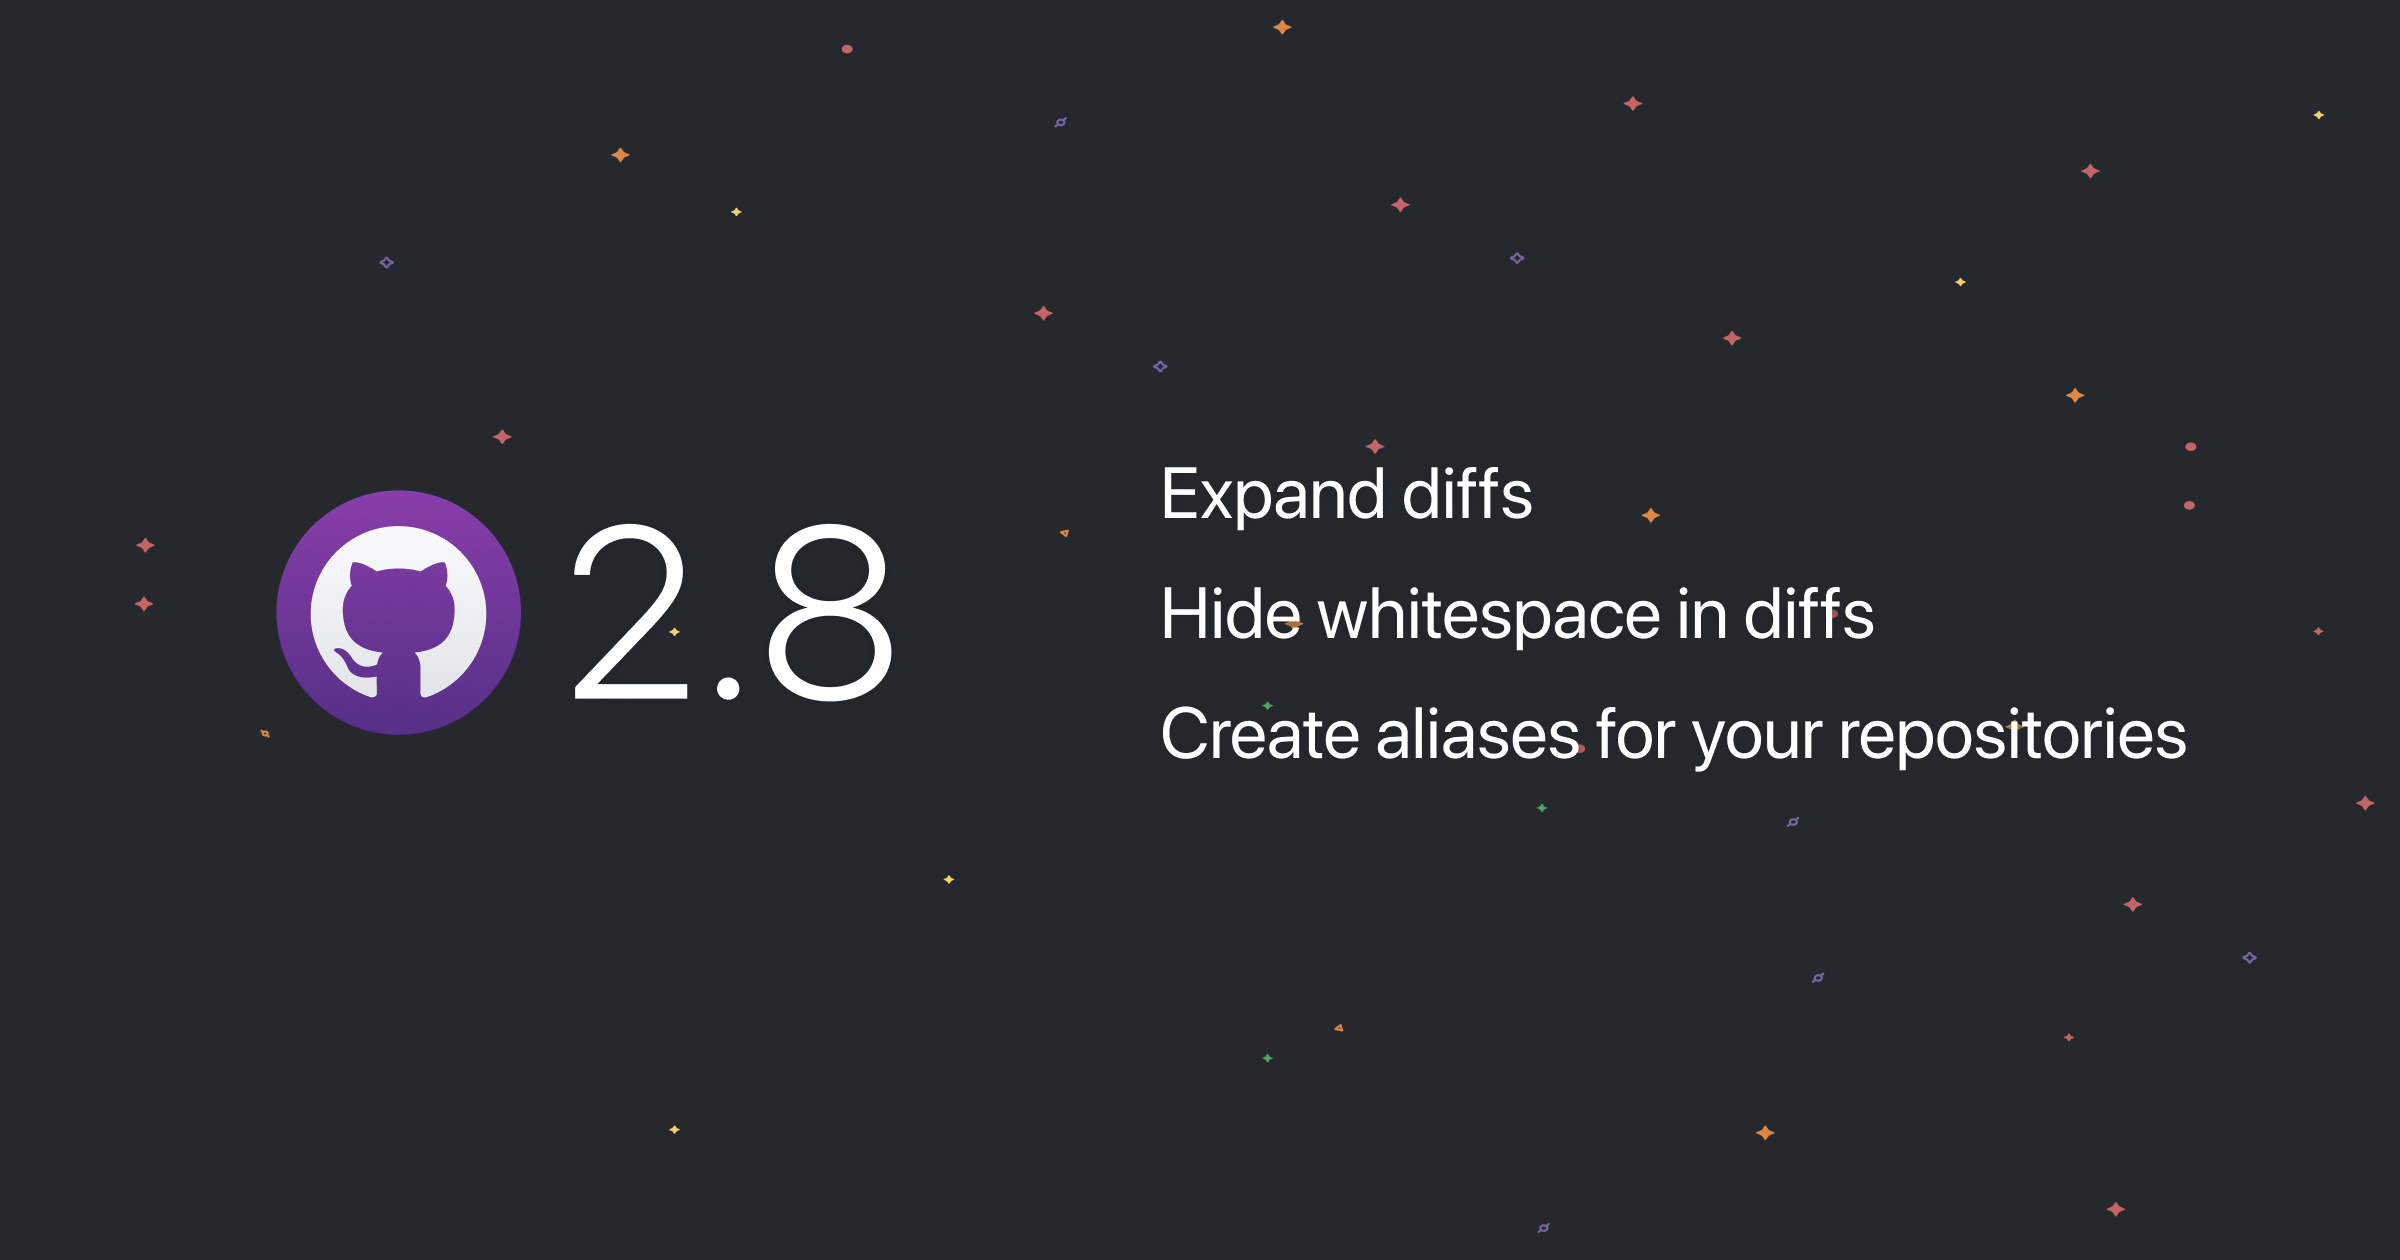 GitHub Desktop Supports Hiding Whitespace, Expanding Diffs, & Creating Repository Aliases